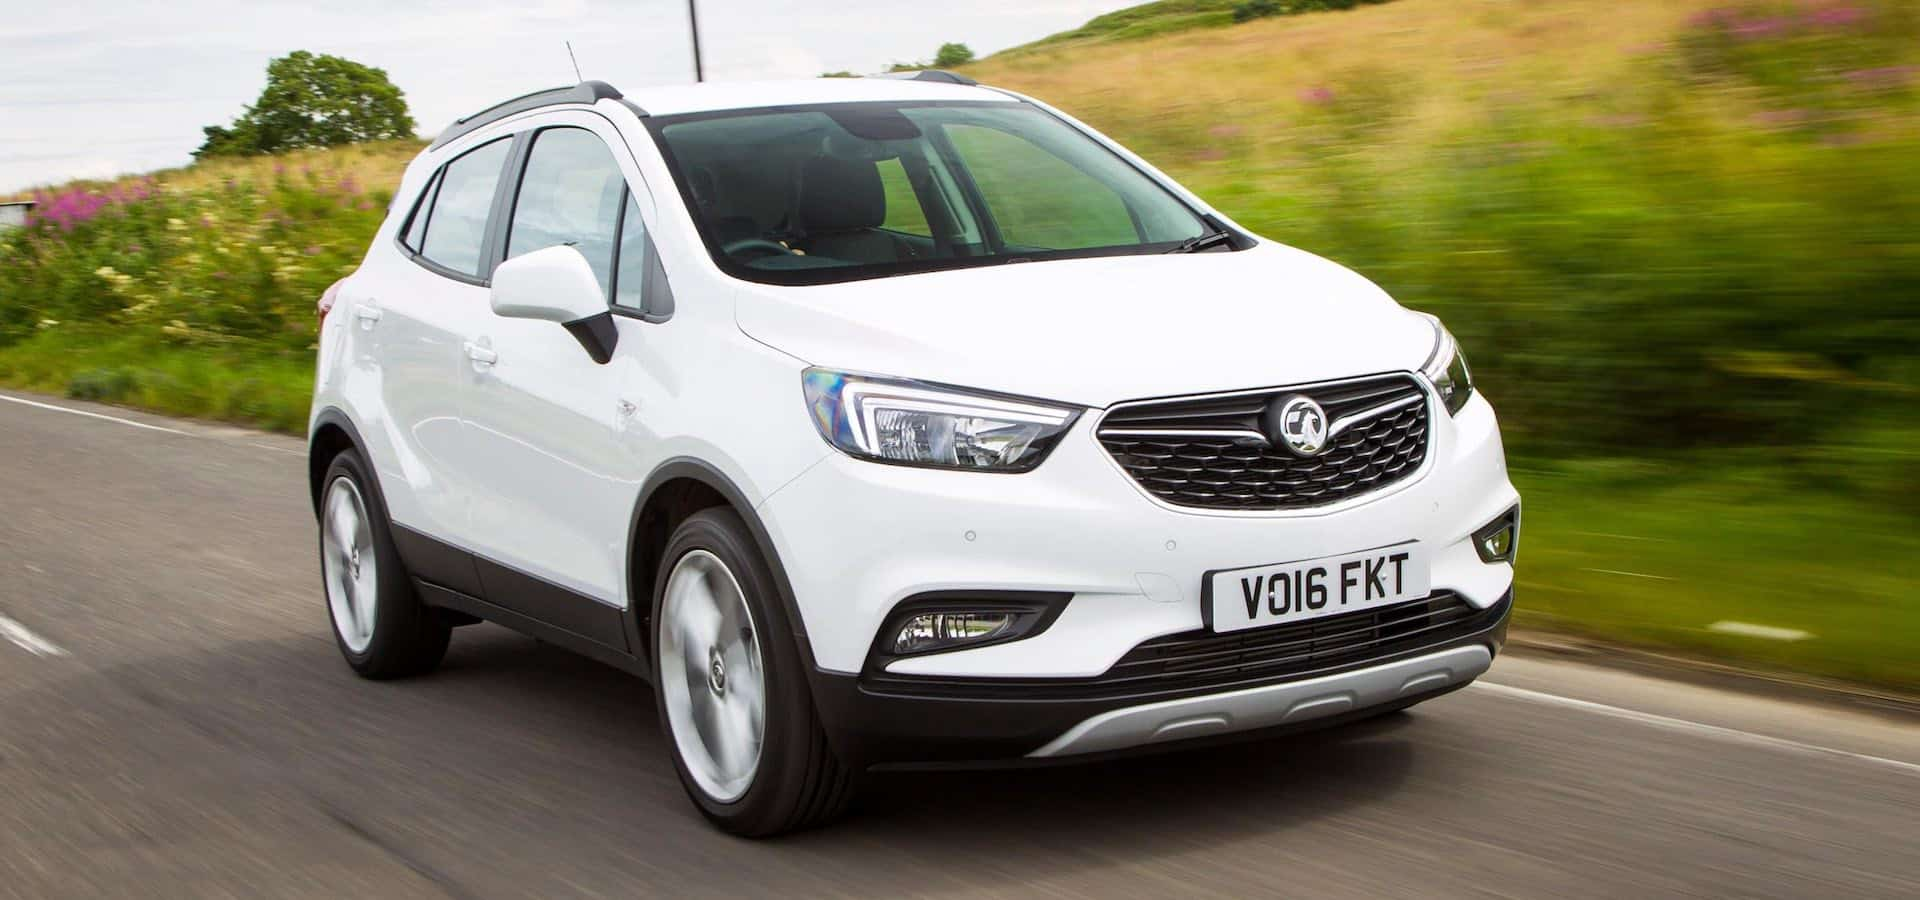 Vauxhall Mokka X Review Car Reviews 2017 The Car Expert